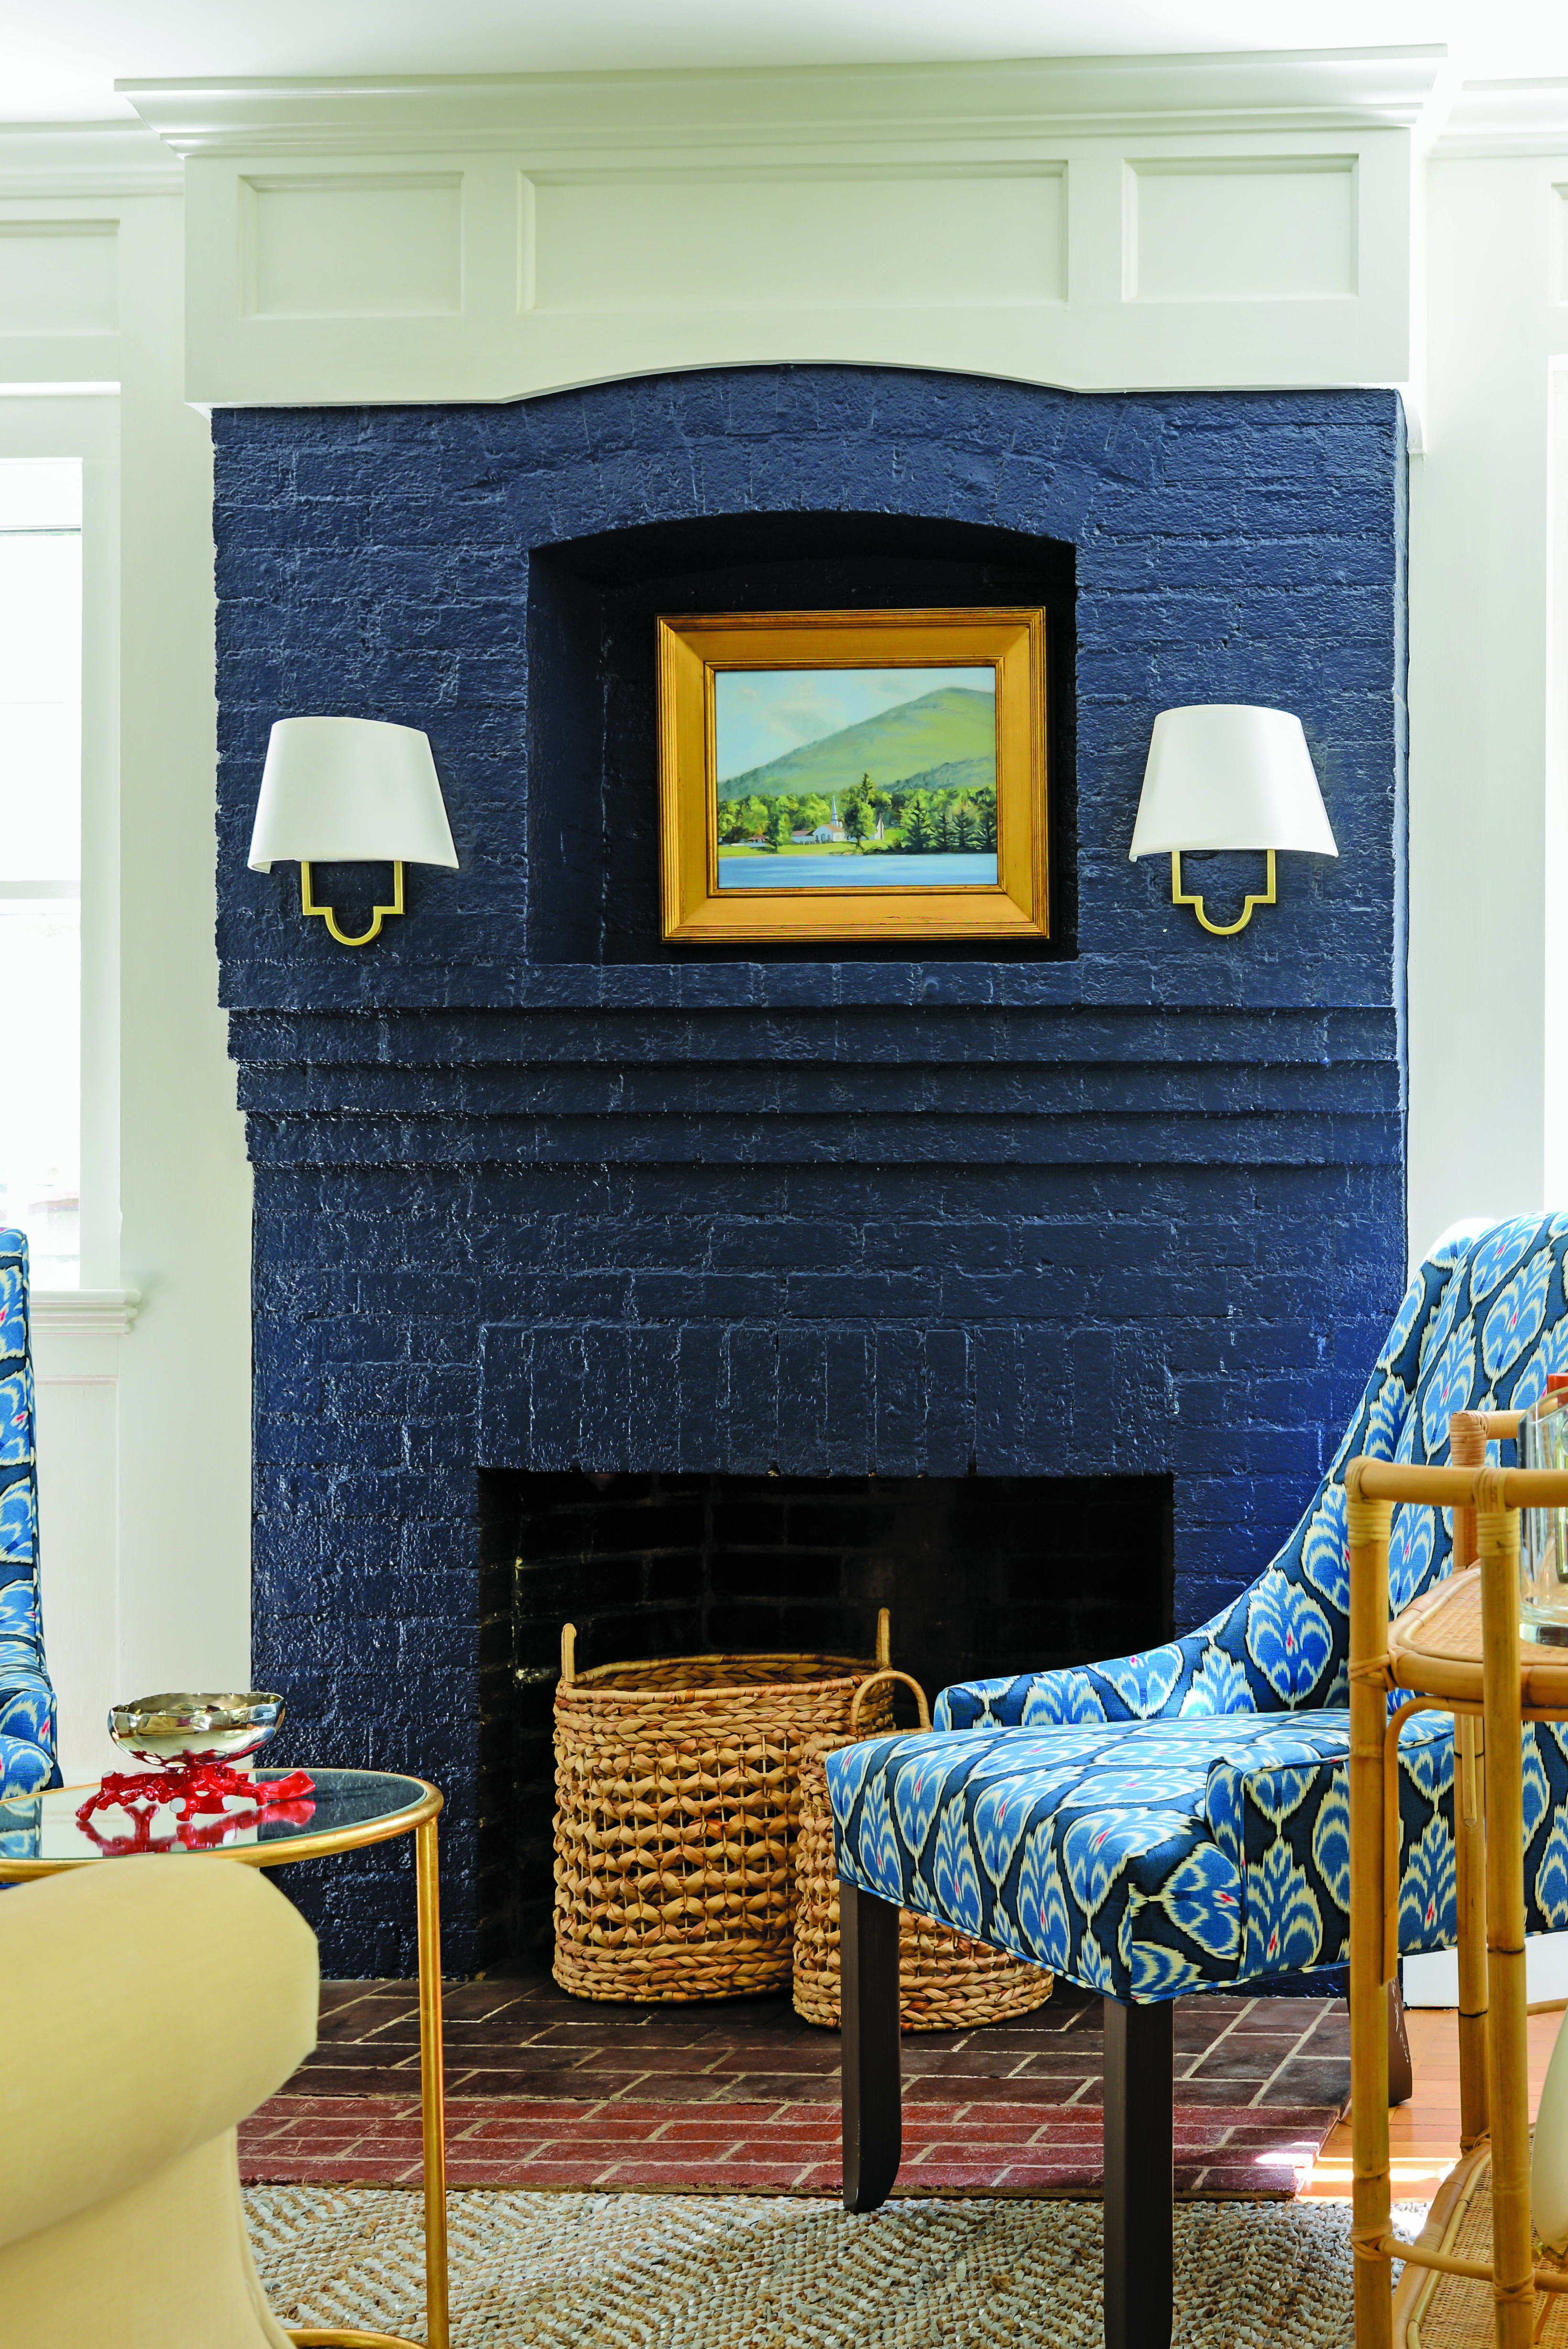 This navy-blue lacquered fireplace ties in perfectly with the patterned accent chair and wall art.